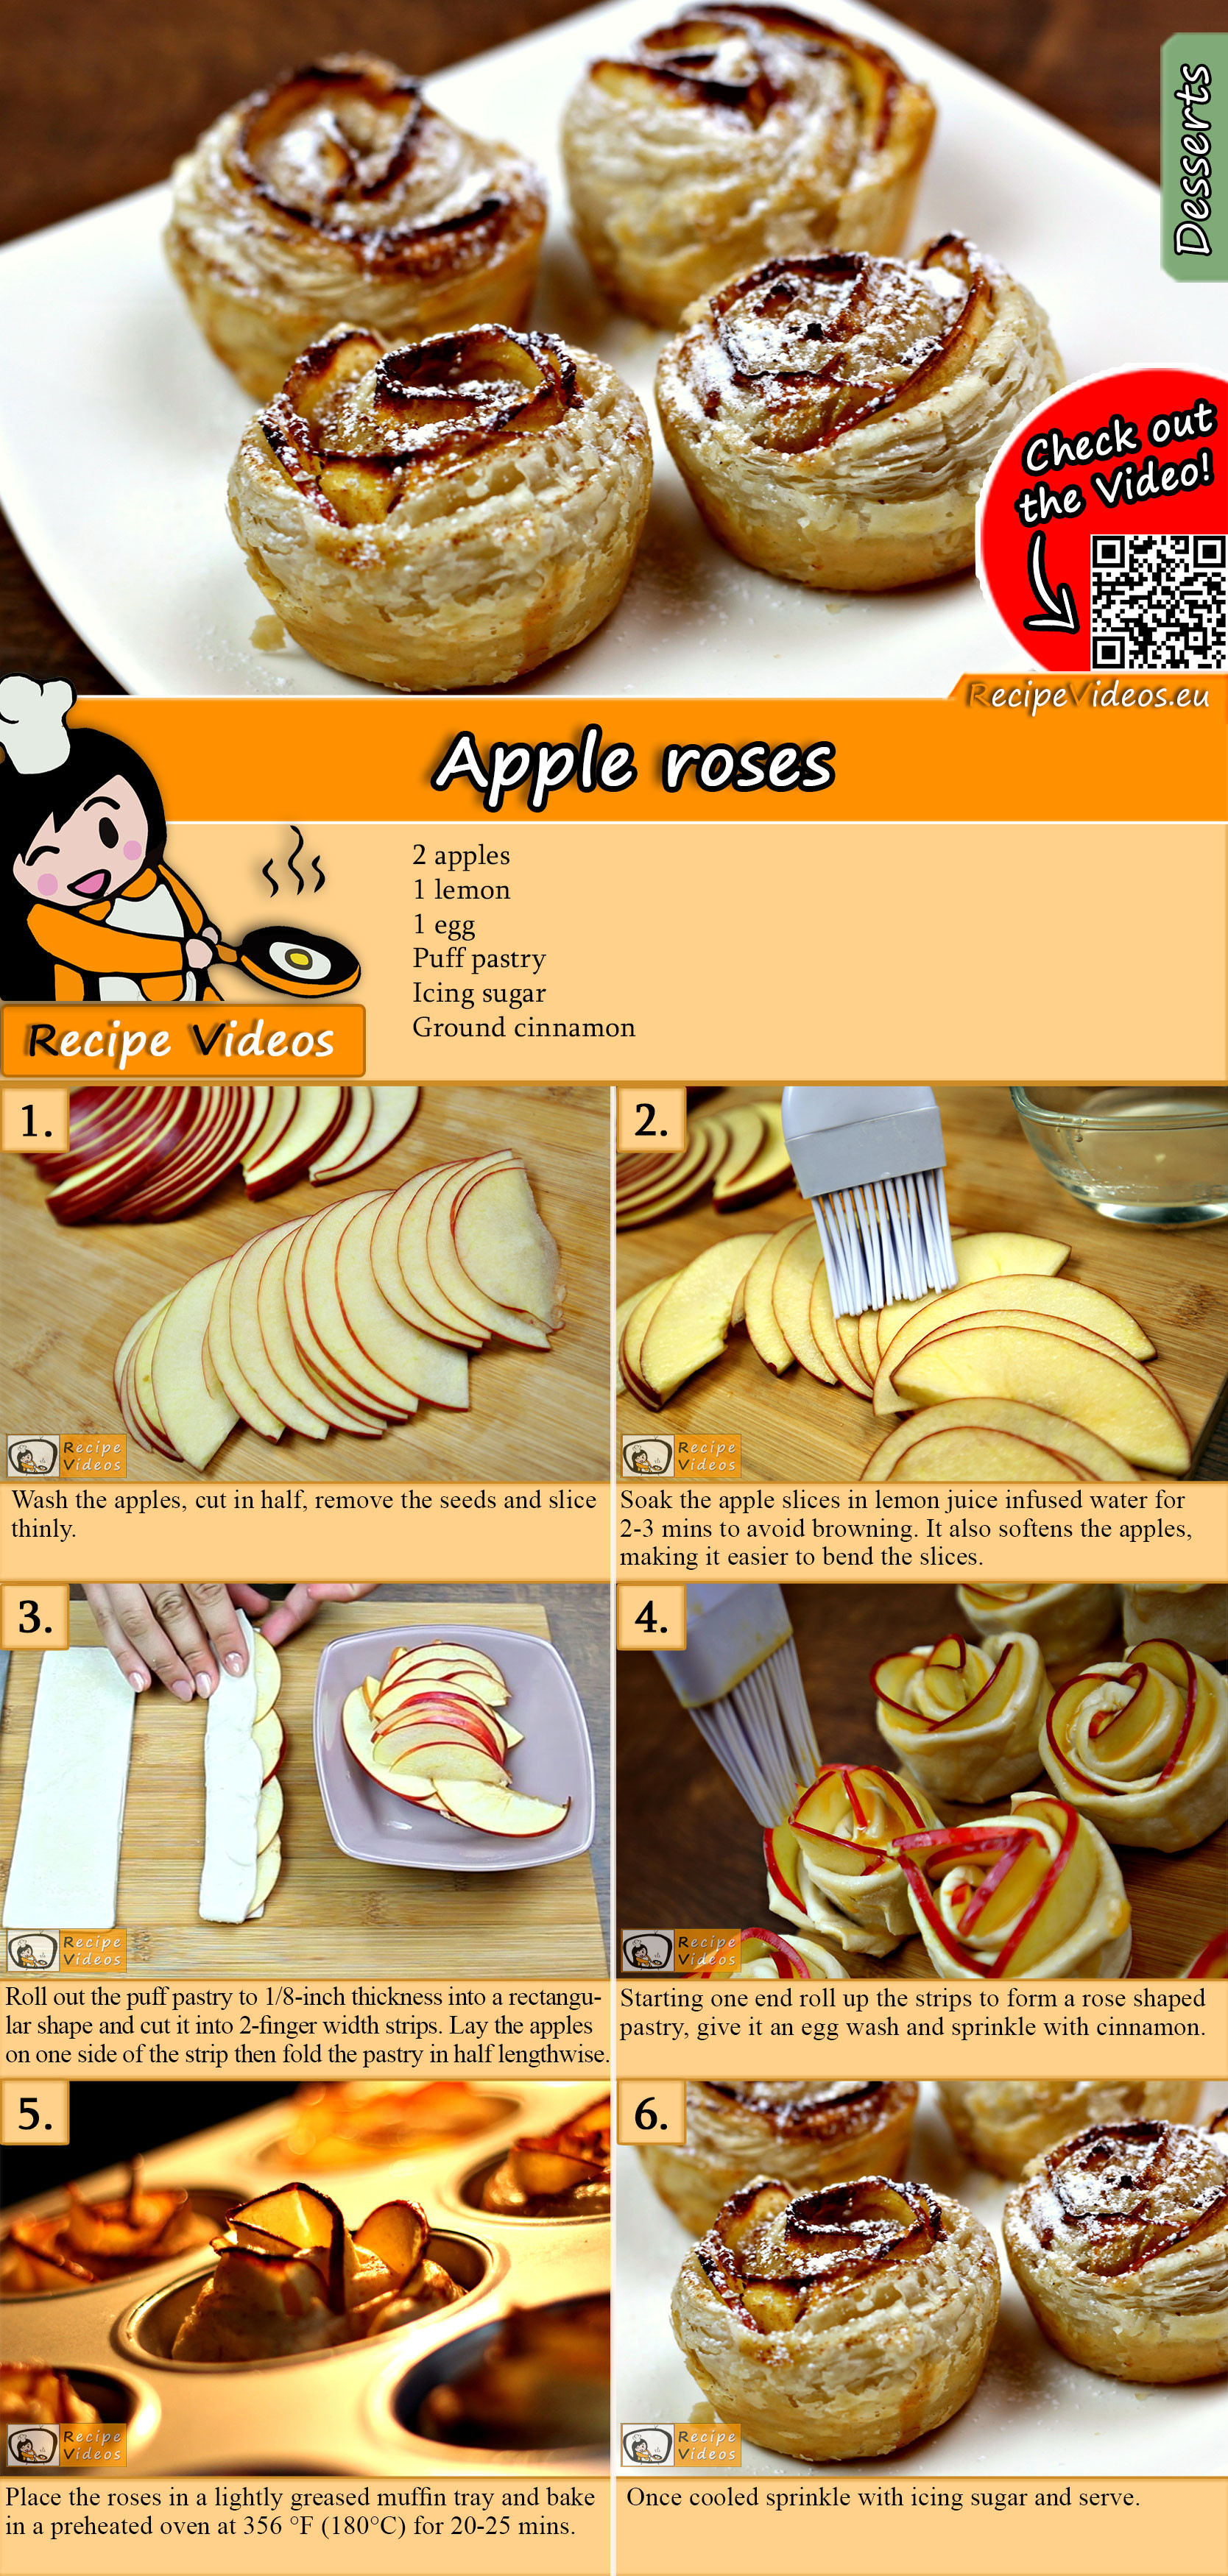 Apple roses recipe with video